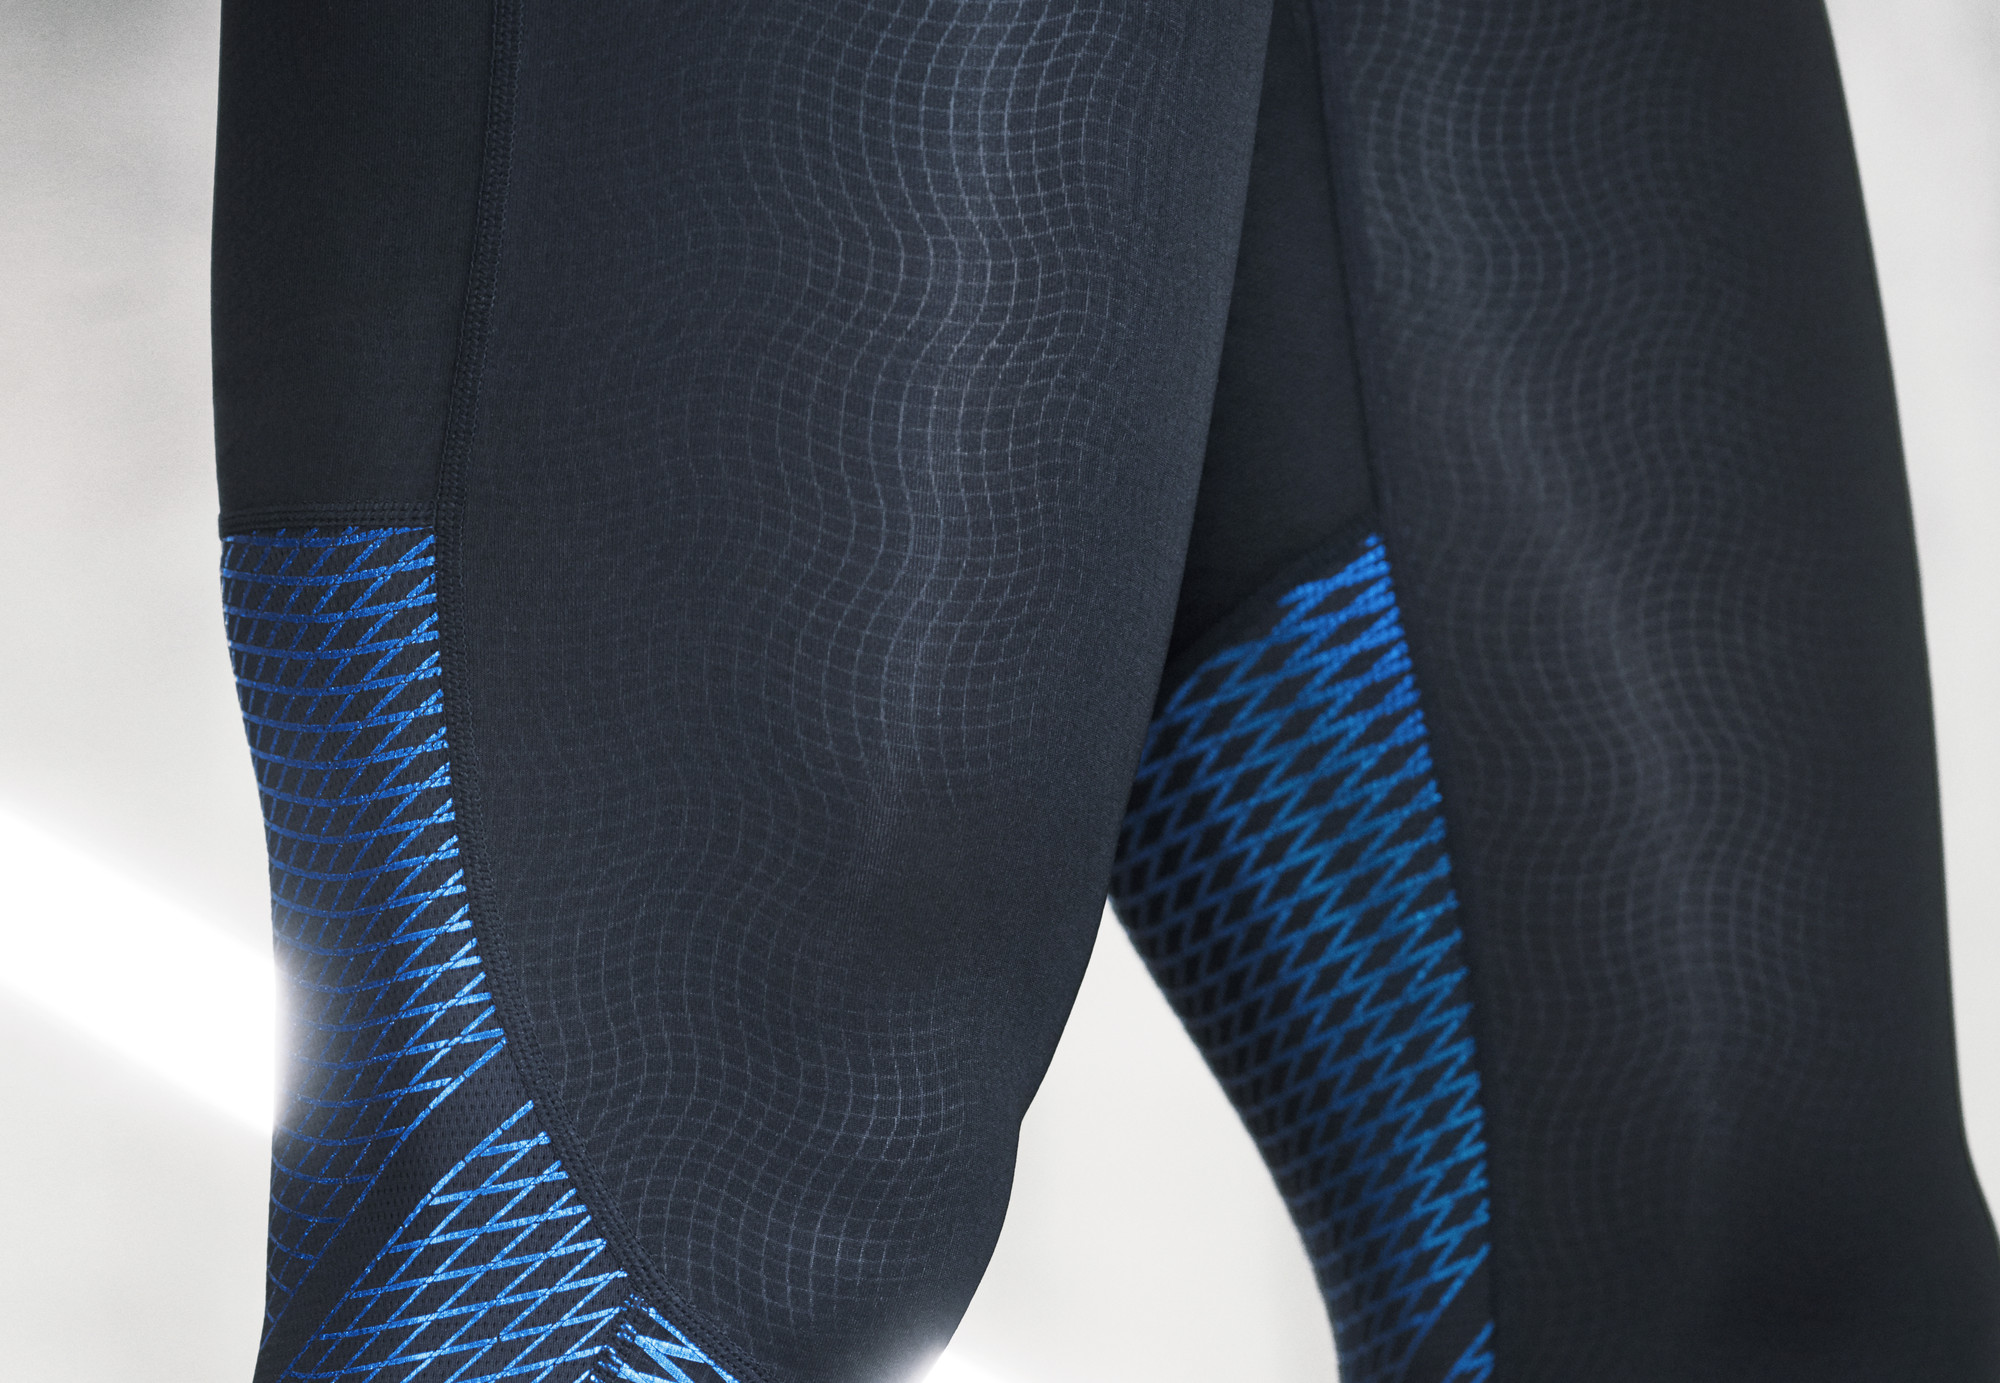 SP16_BSTY_Tights_NikePro_HypercoolMax_Detail2_02_original